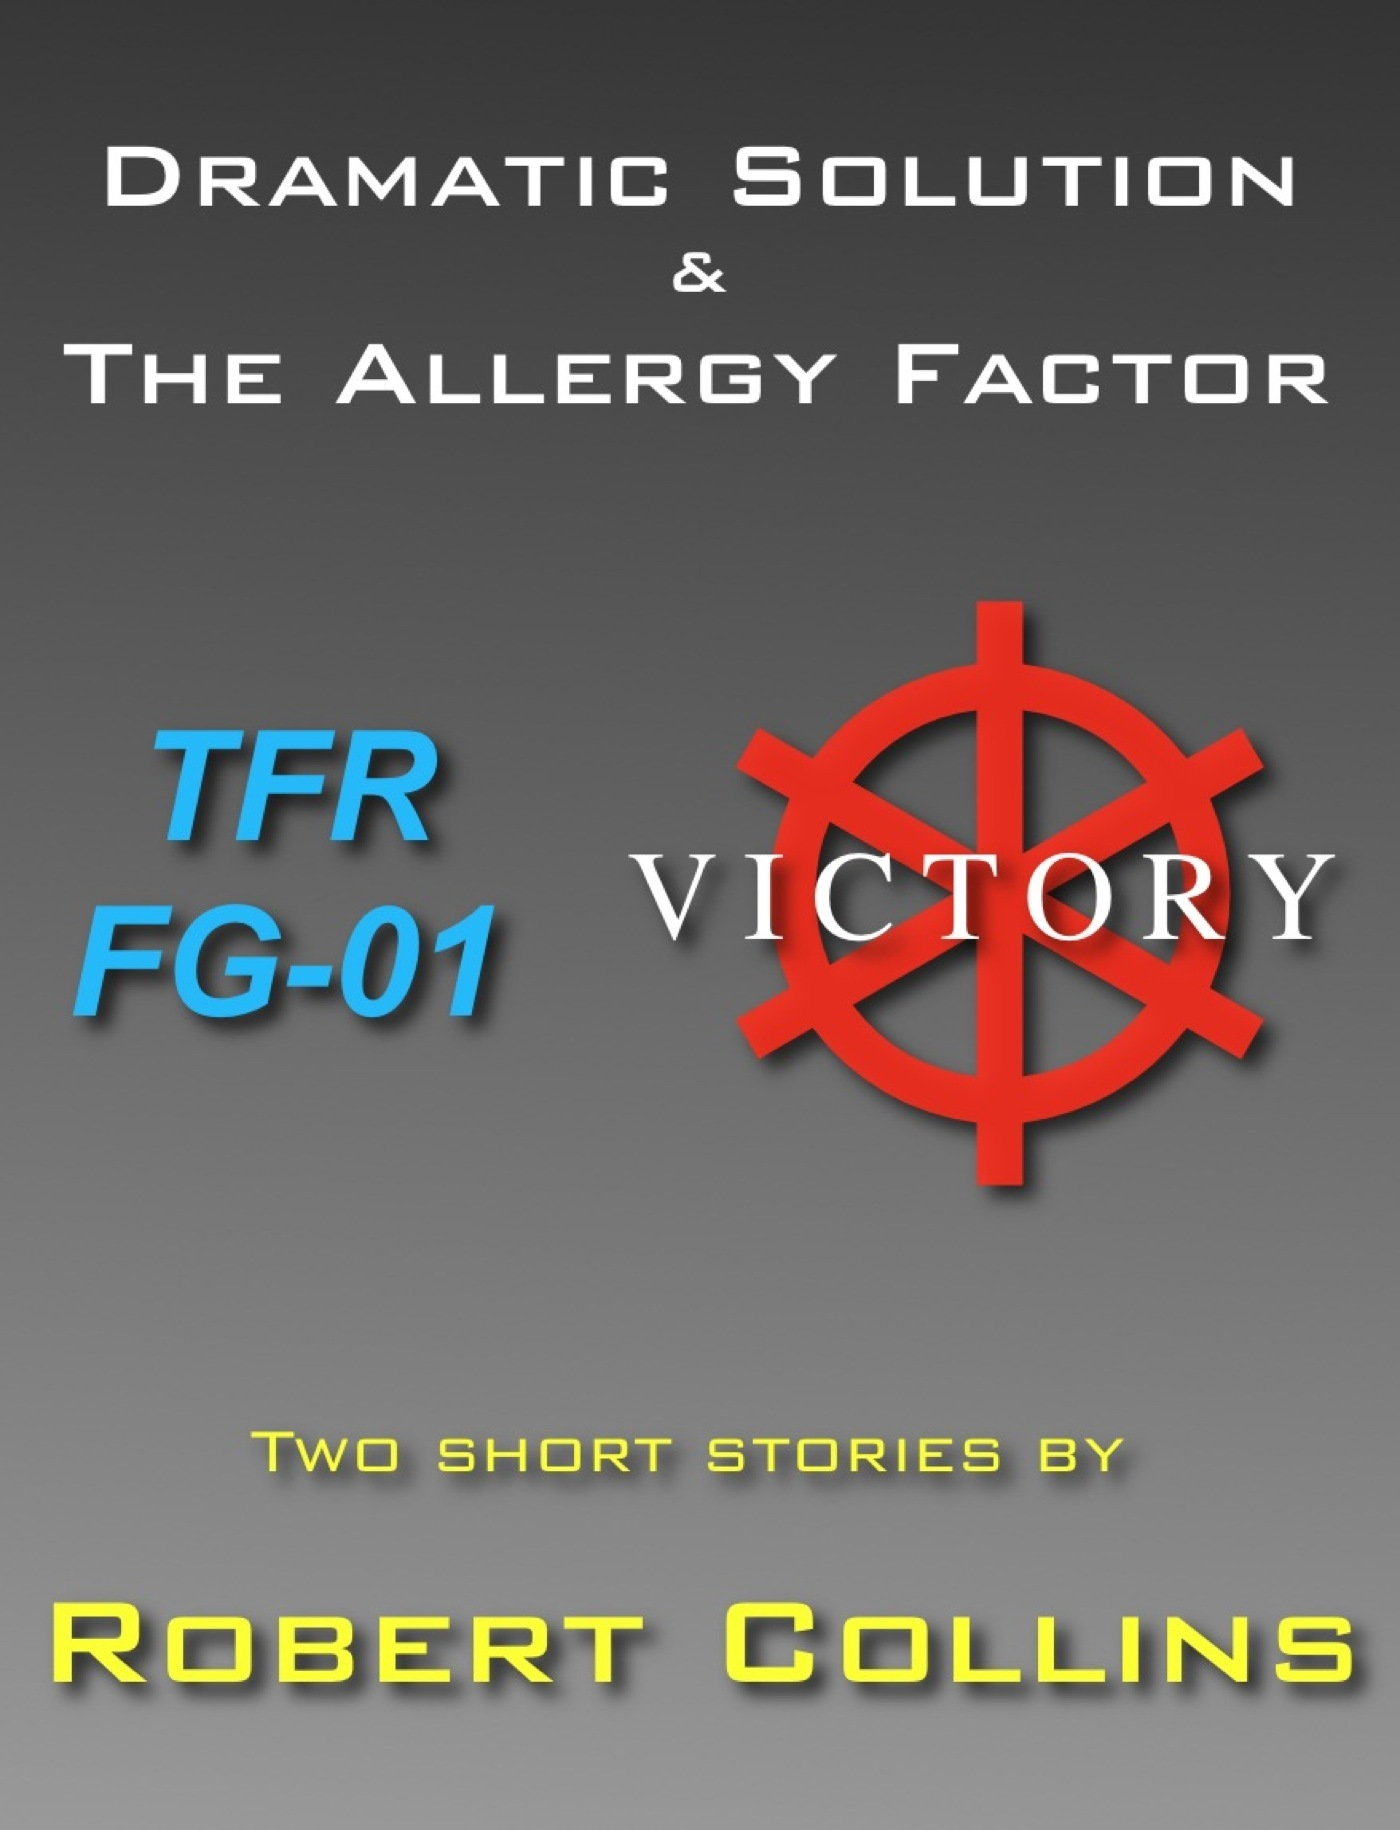 Dramatic Solution/The Allergy Factor